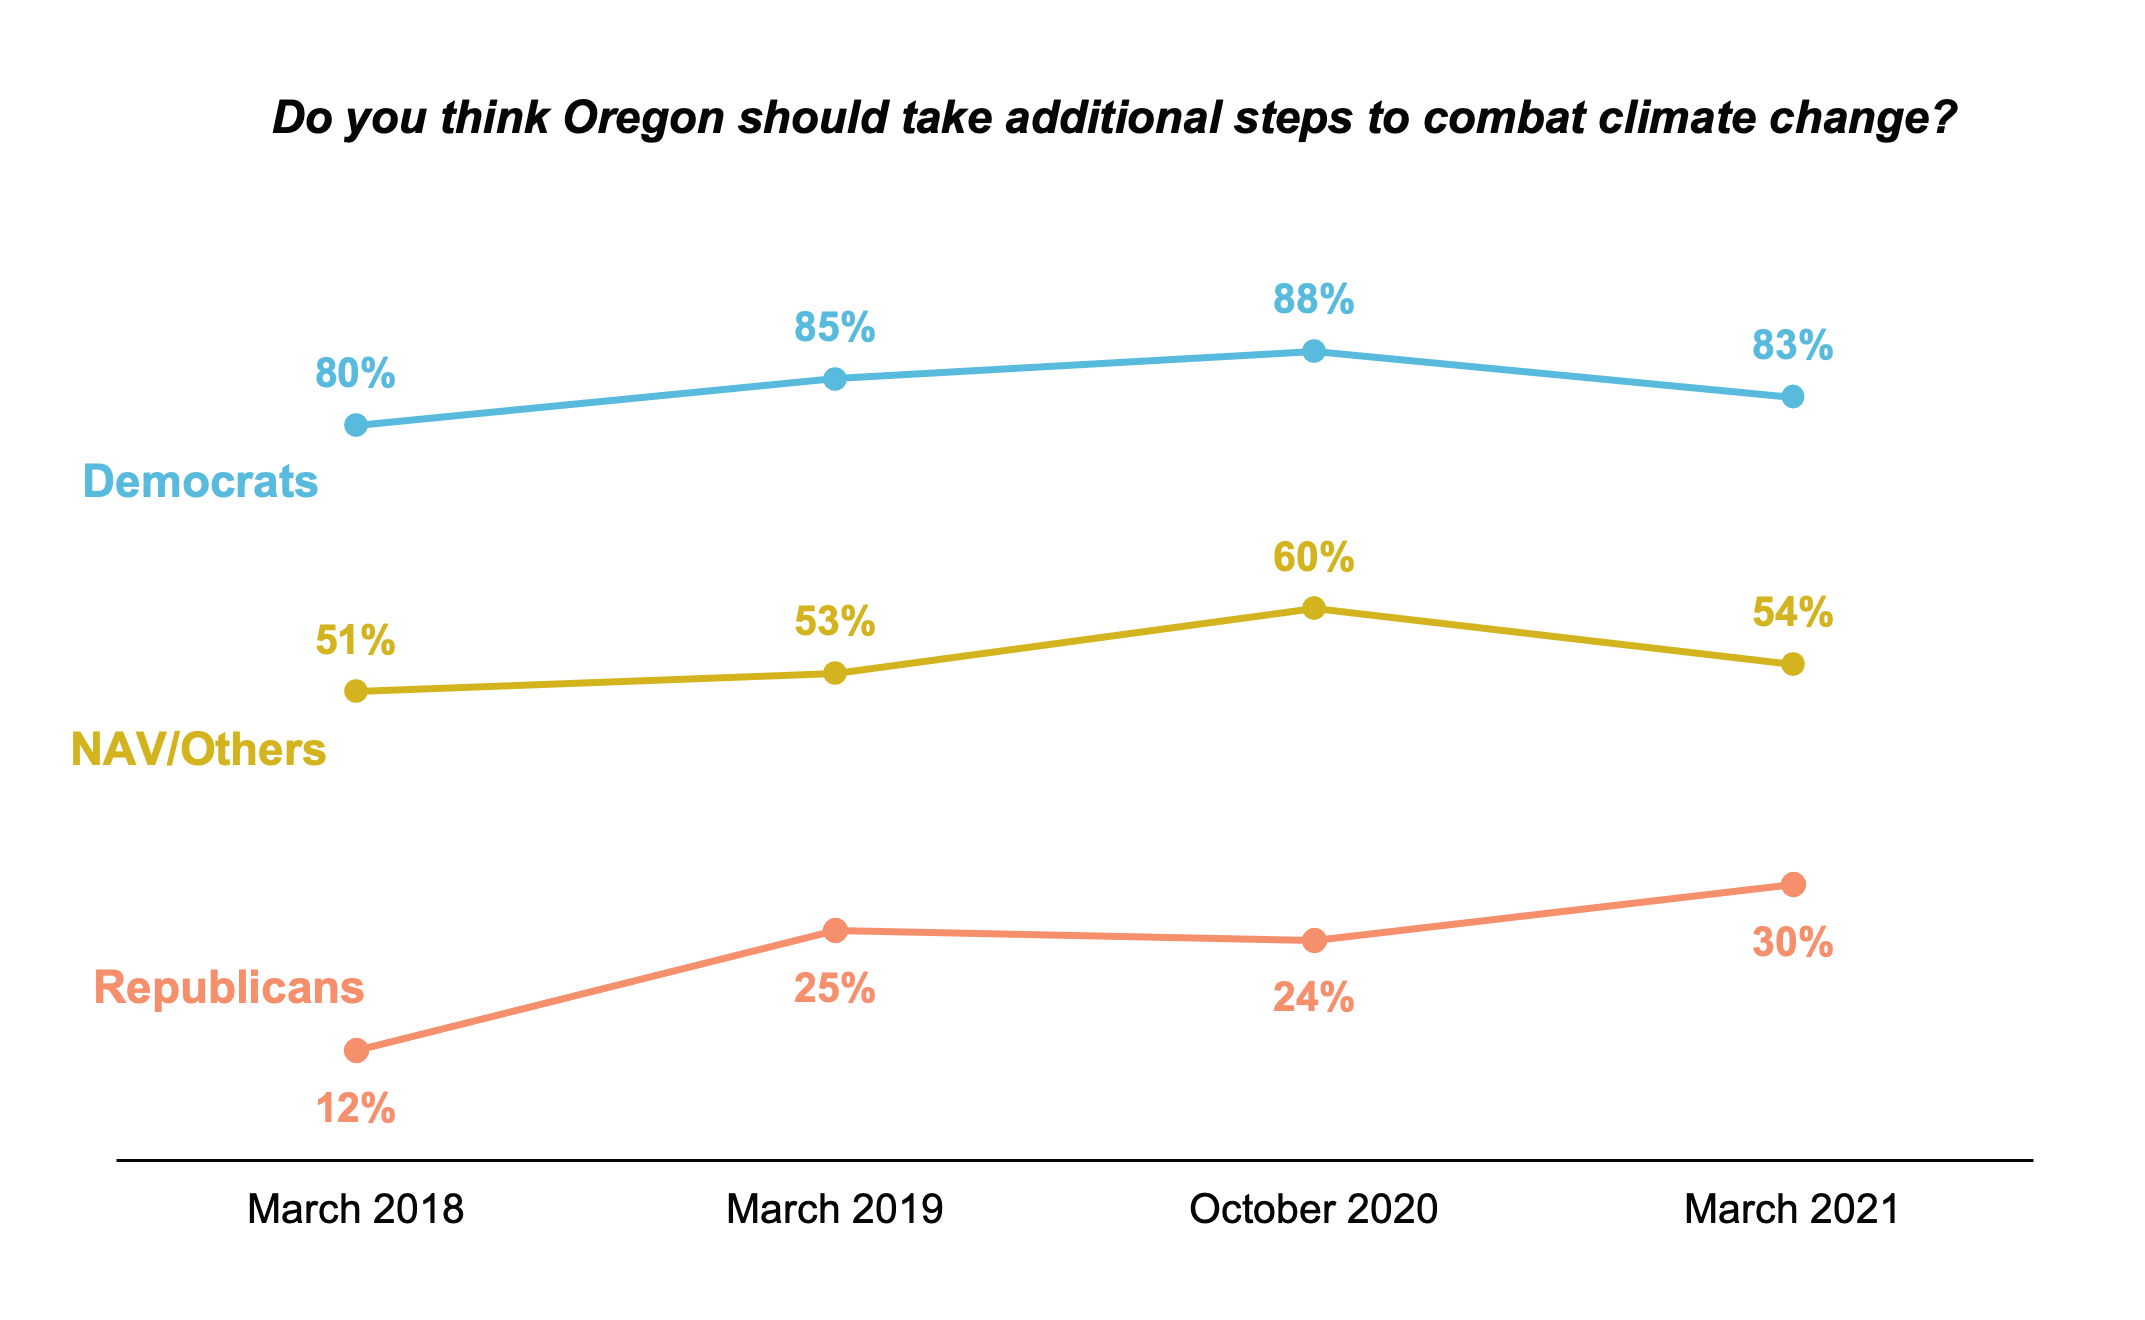 Line graph results over time asking residents if Oregon should take additional steps to combat climate change. Separated by political affiliation.